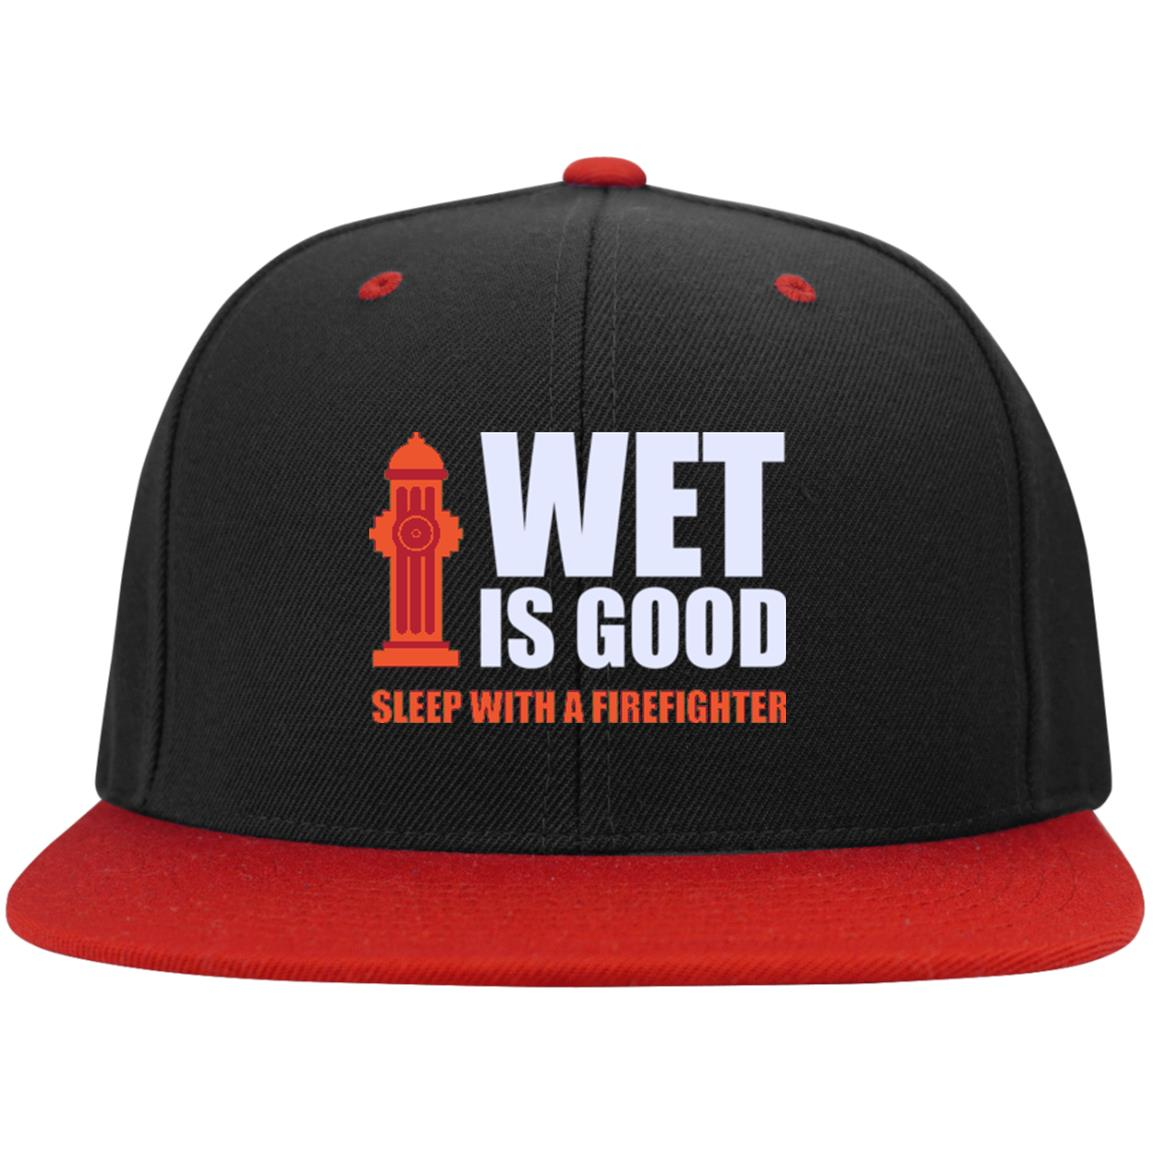 Wet Is Good Snapback Hat - firefighter bestseller